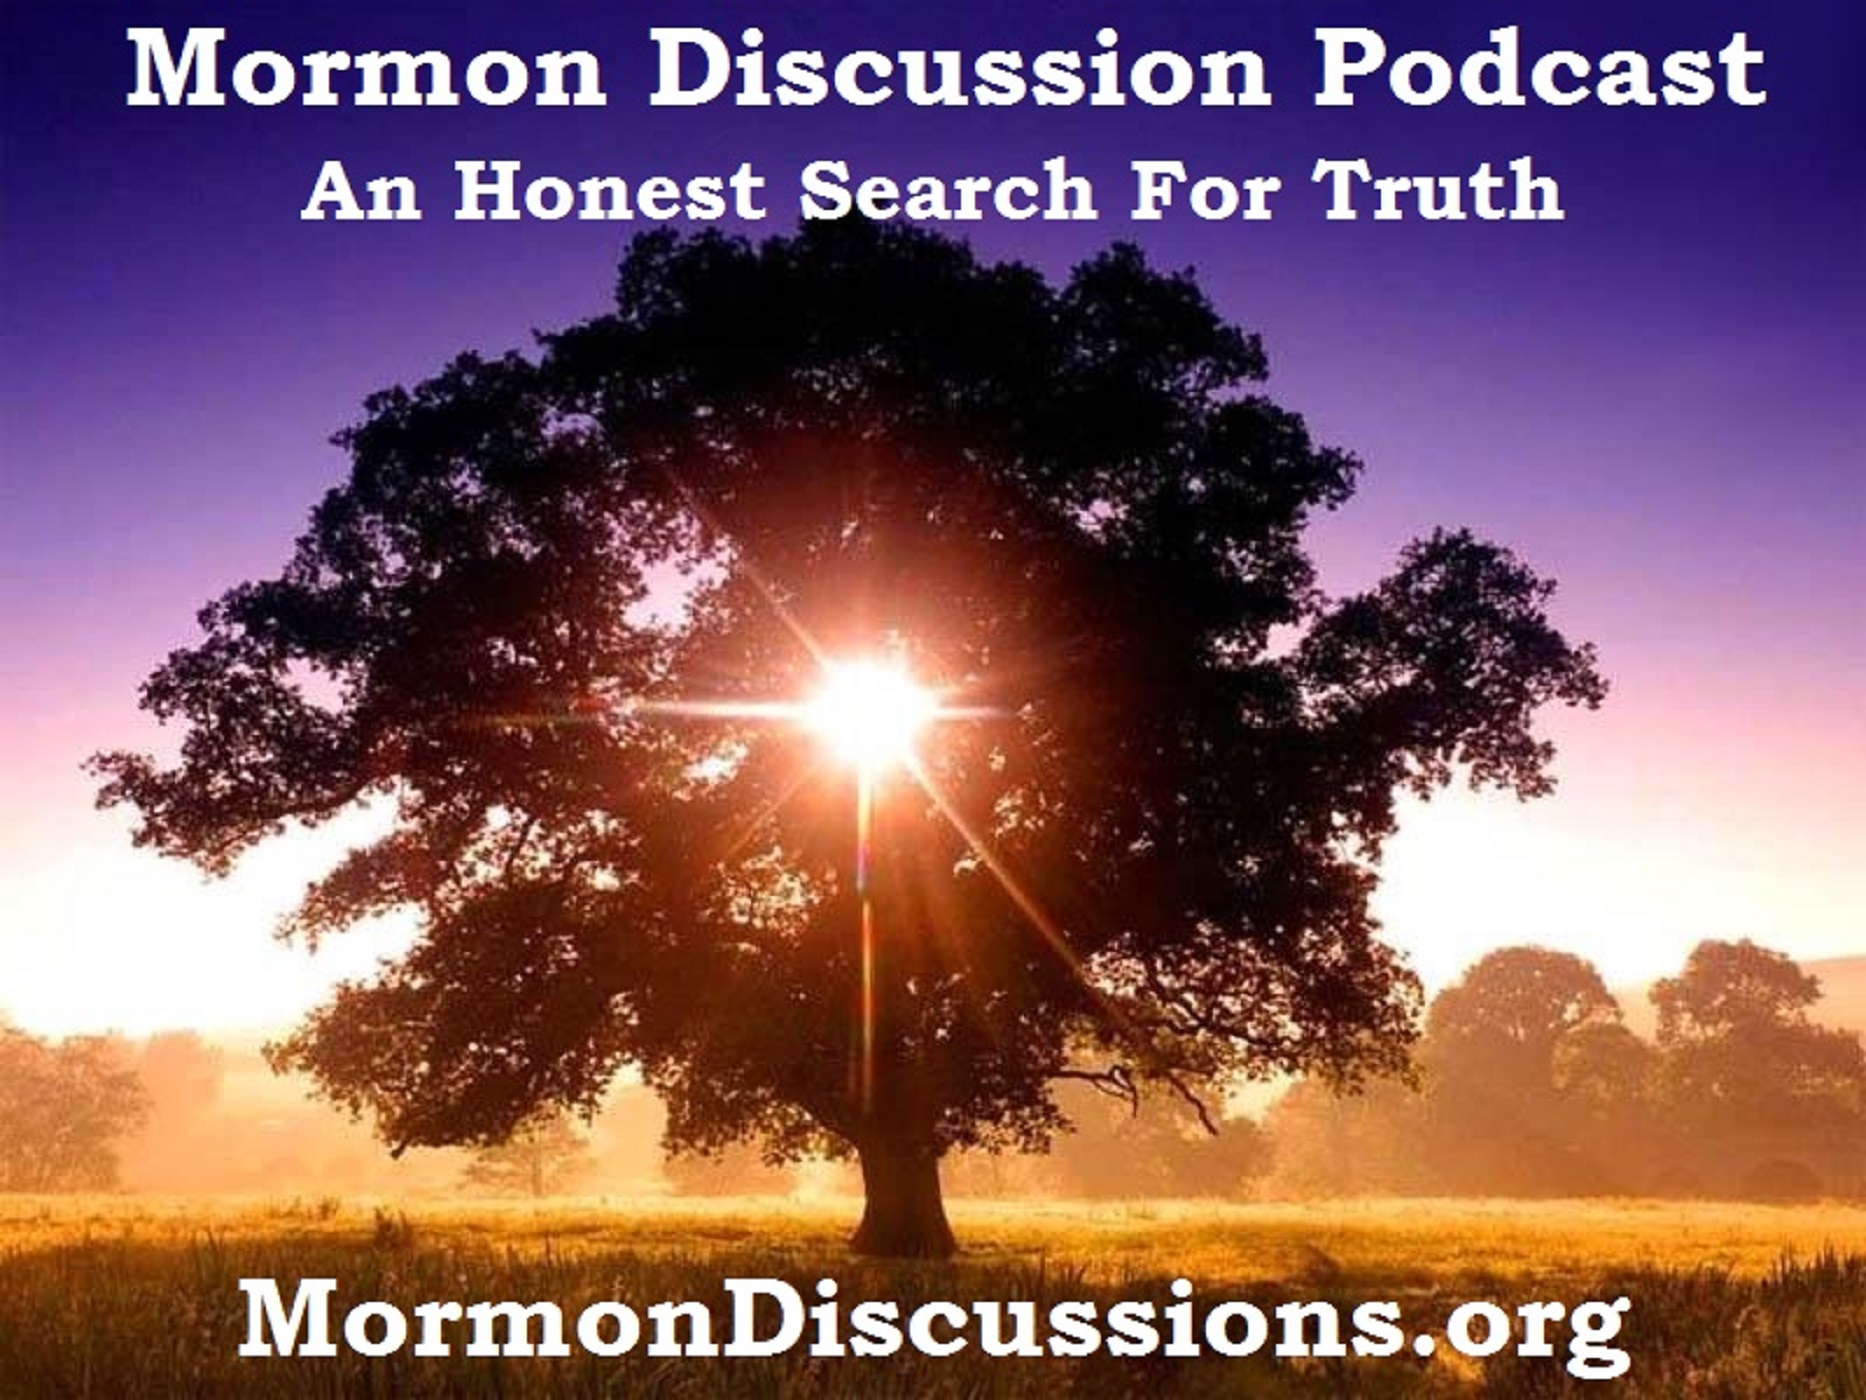 Mormon Discussion Podcast: Leading With Faith